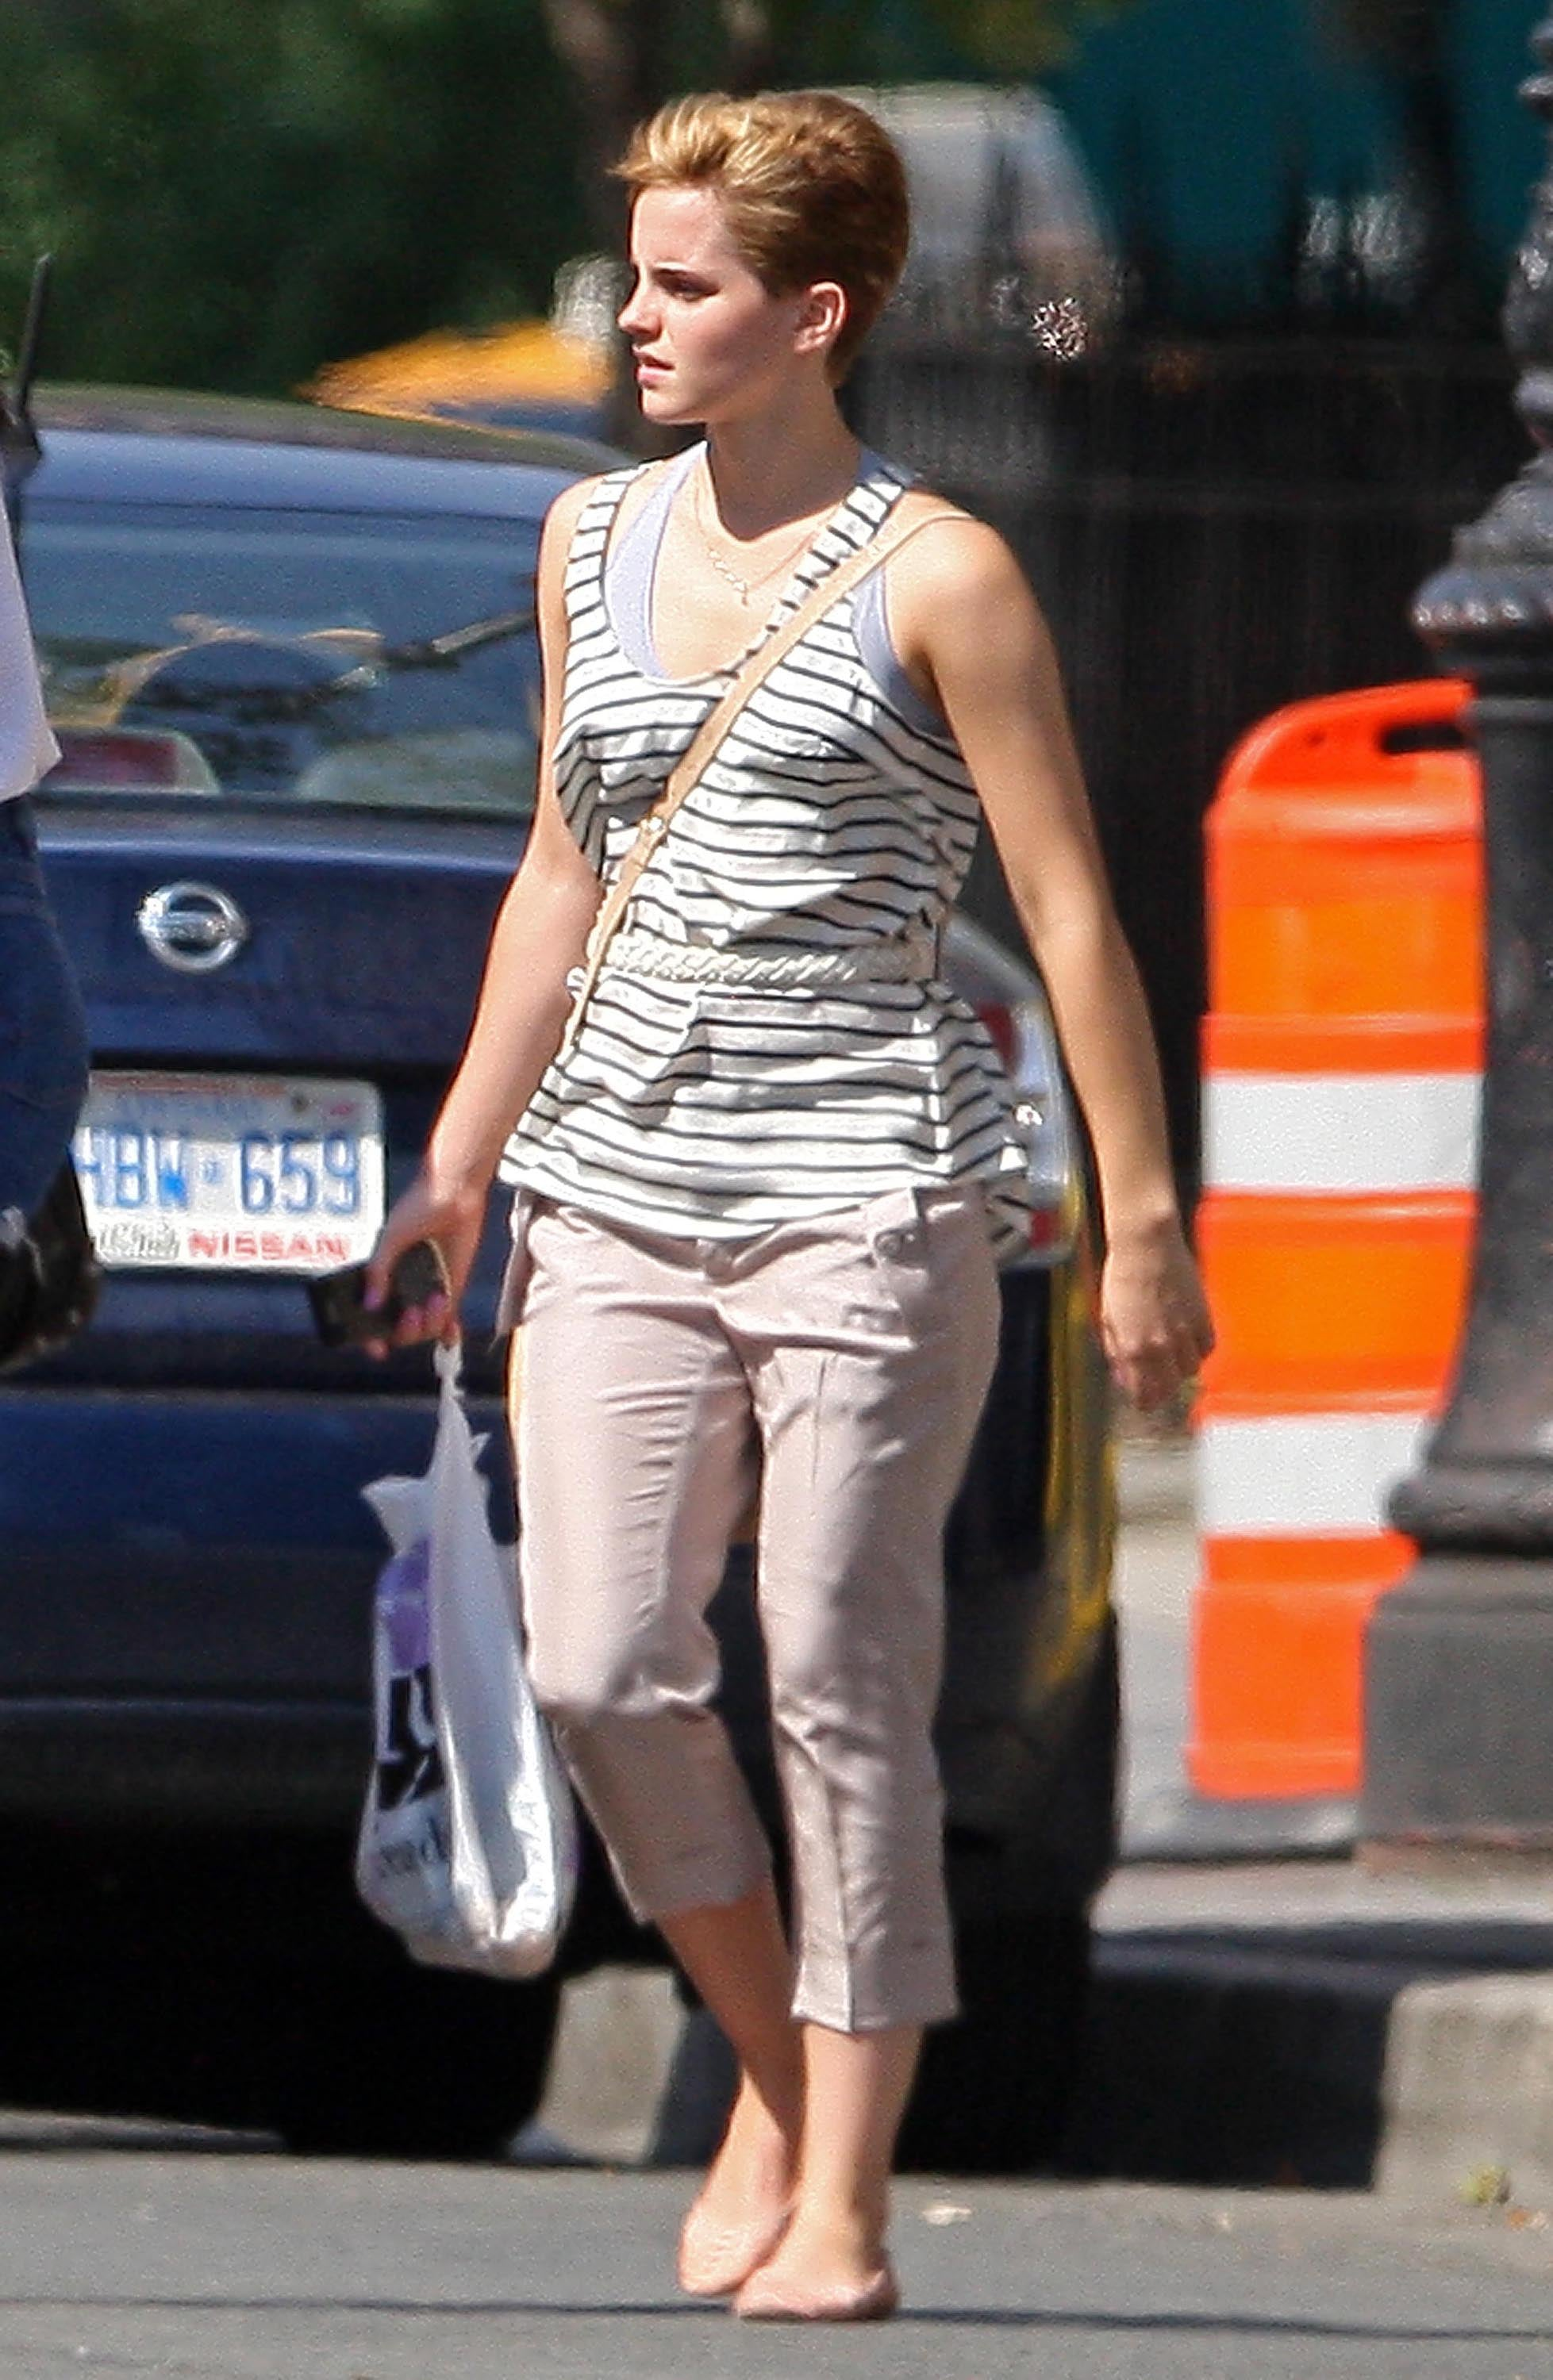 Pictures Of Emma Watson With New Short Haircut In Nyc Popsugar Celebrity